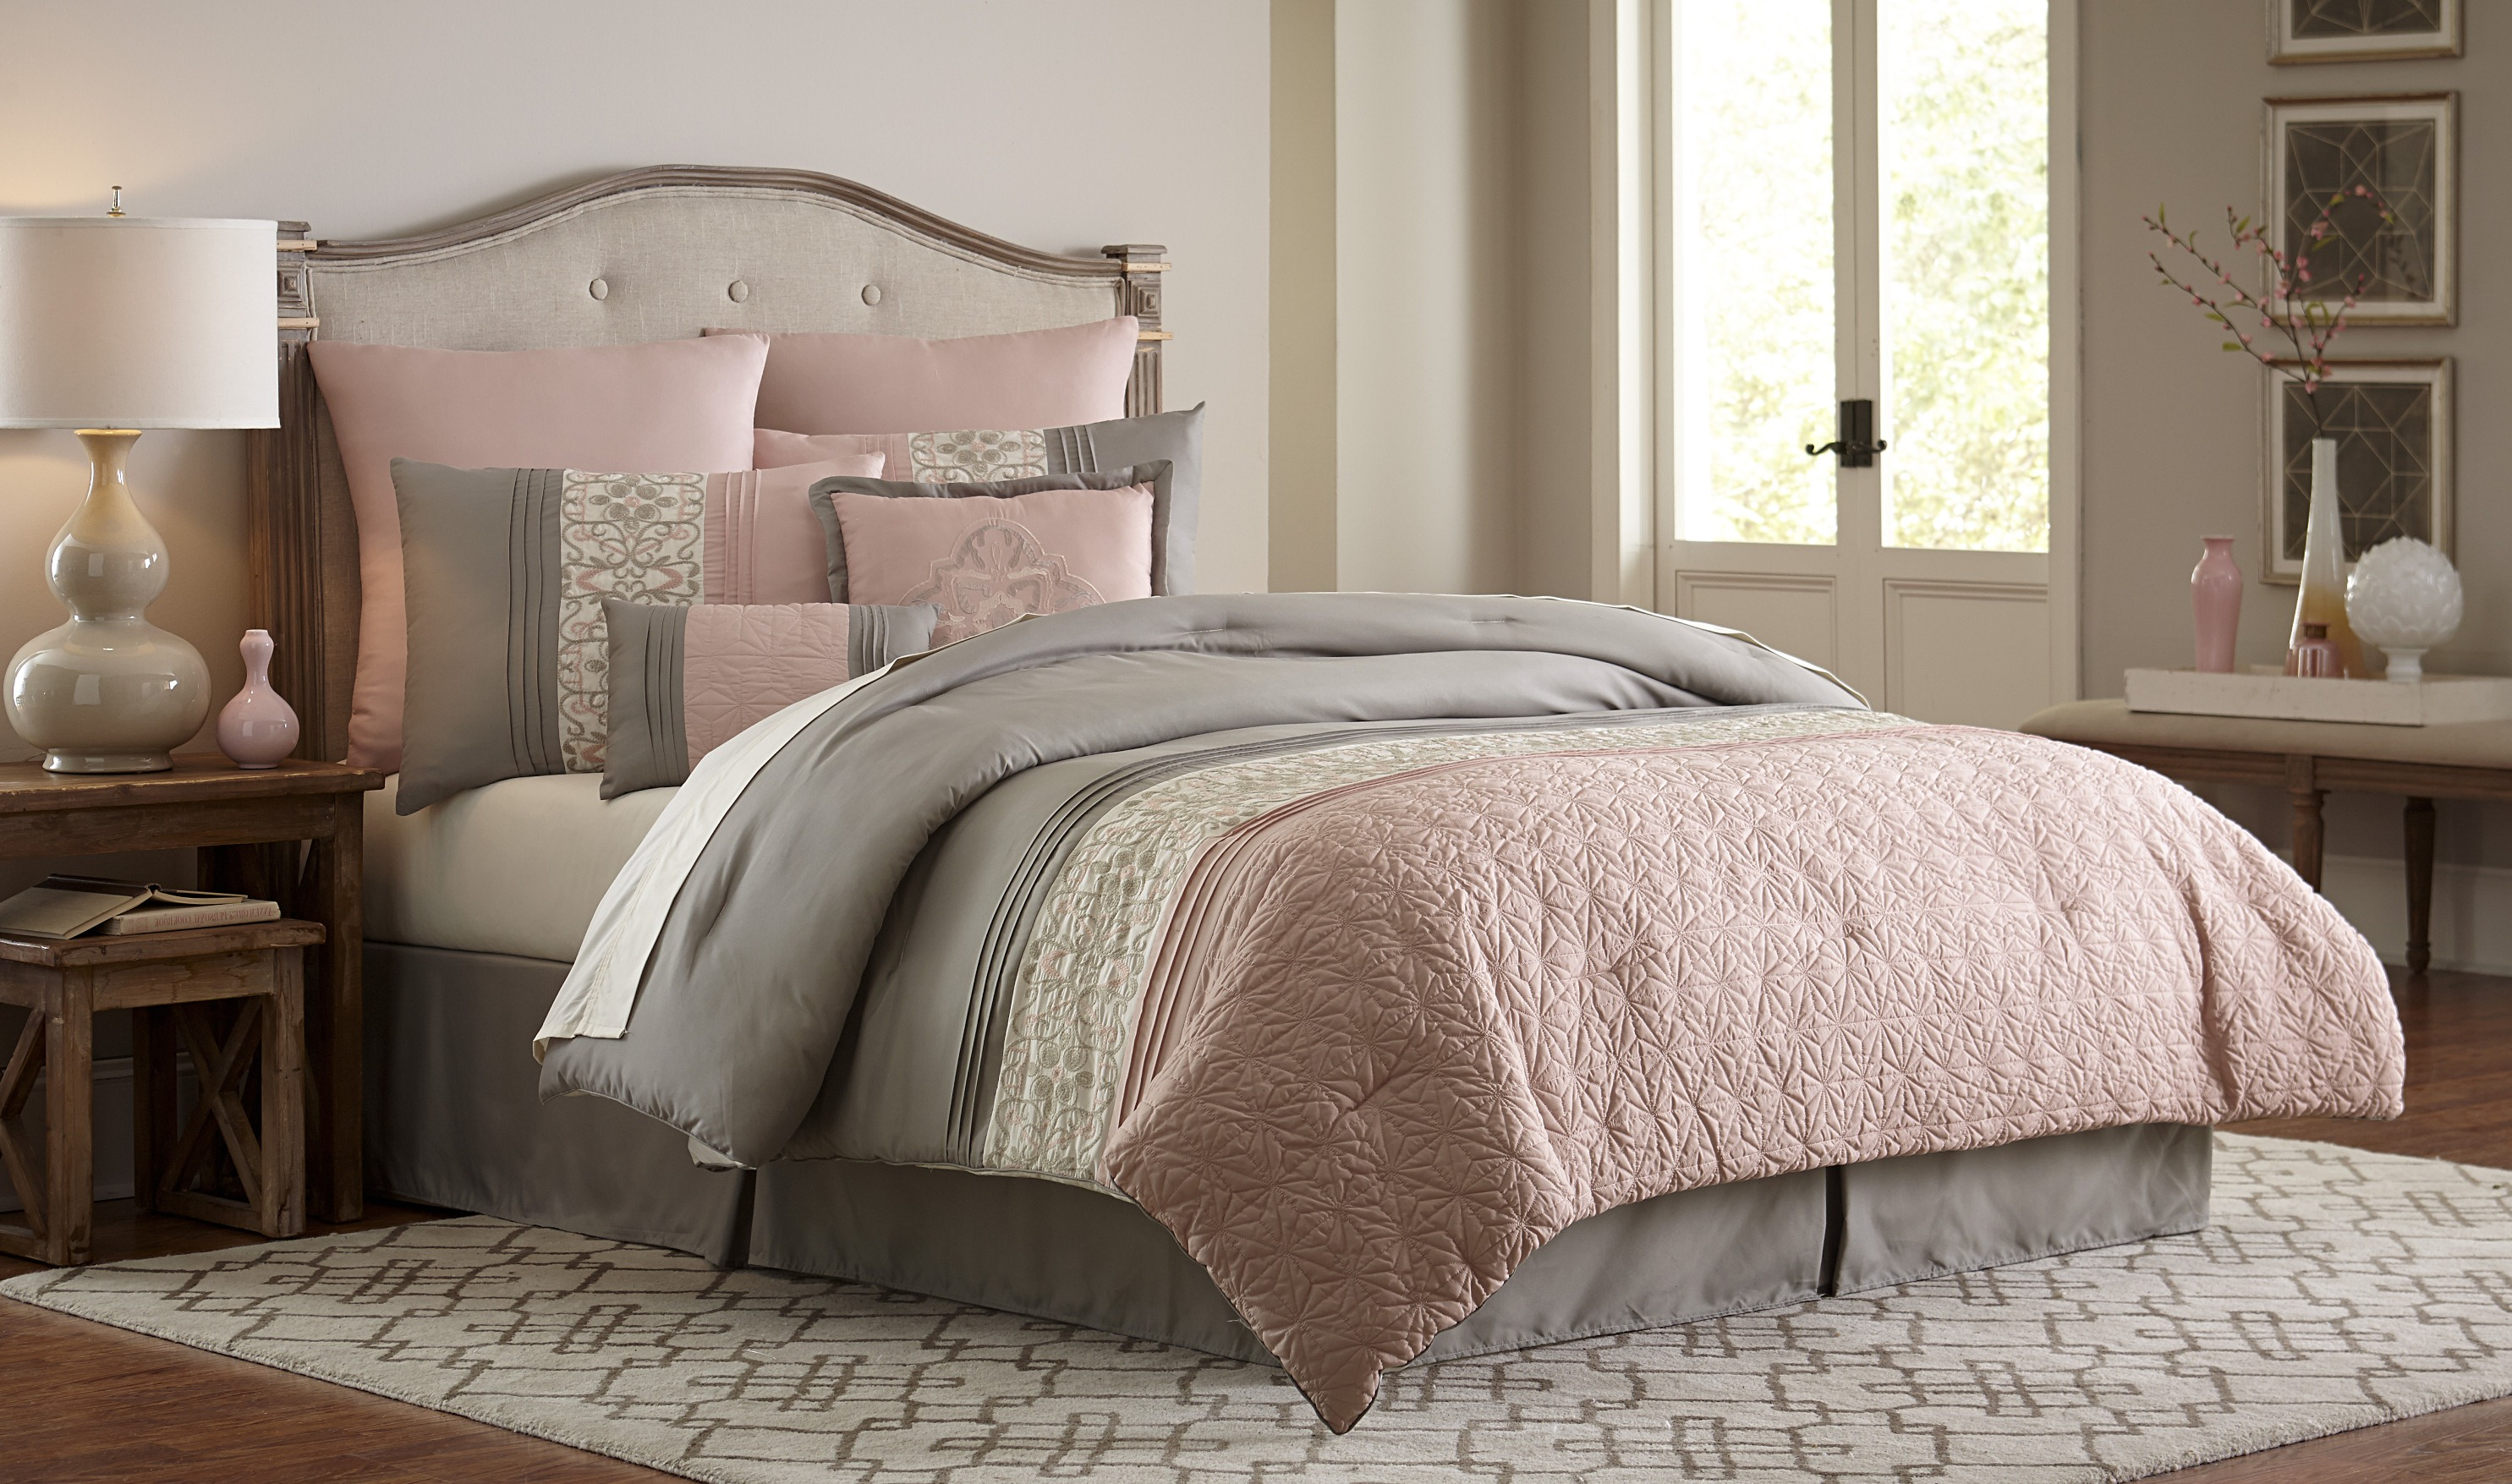 Essential Home 8-Piece Comforter Set